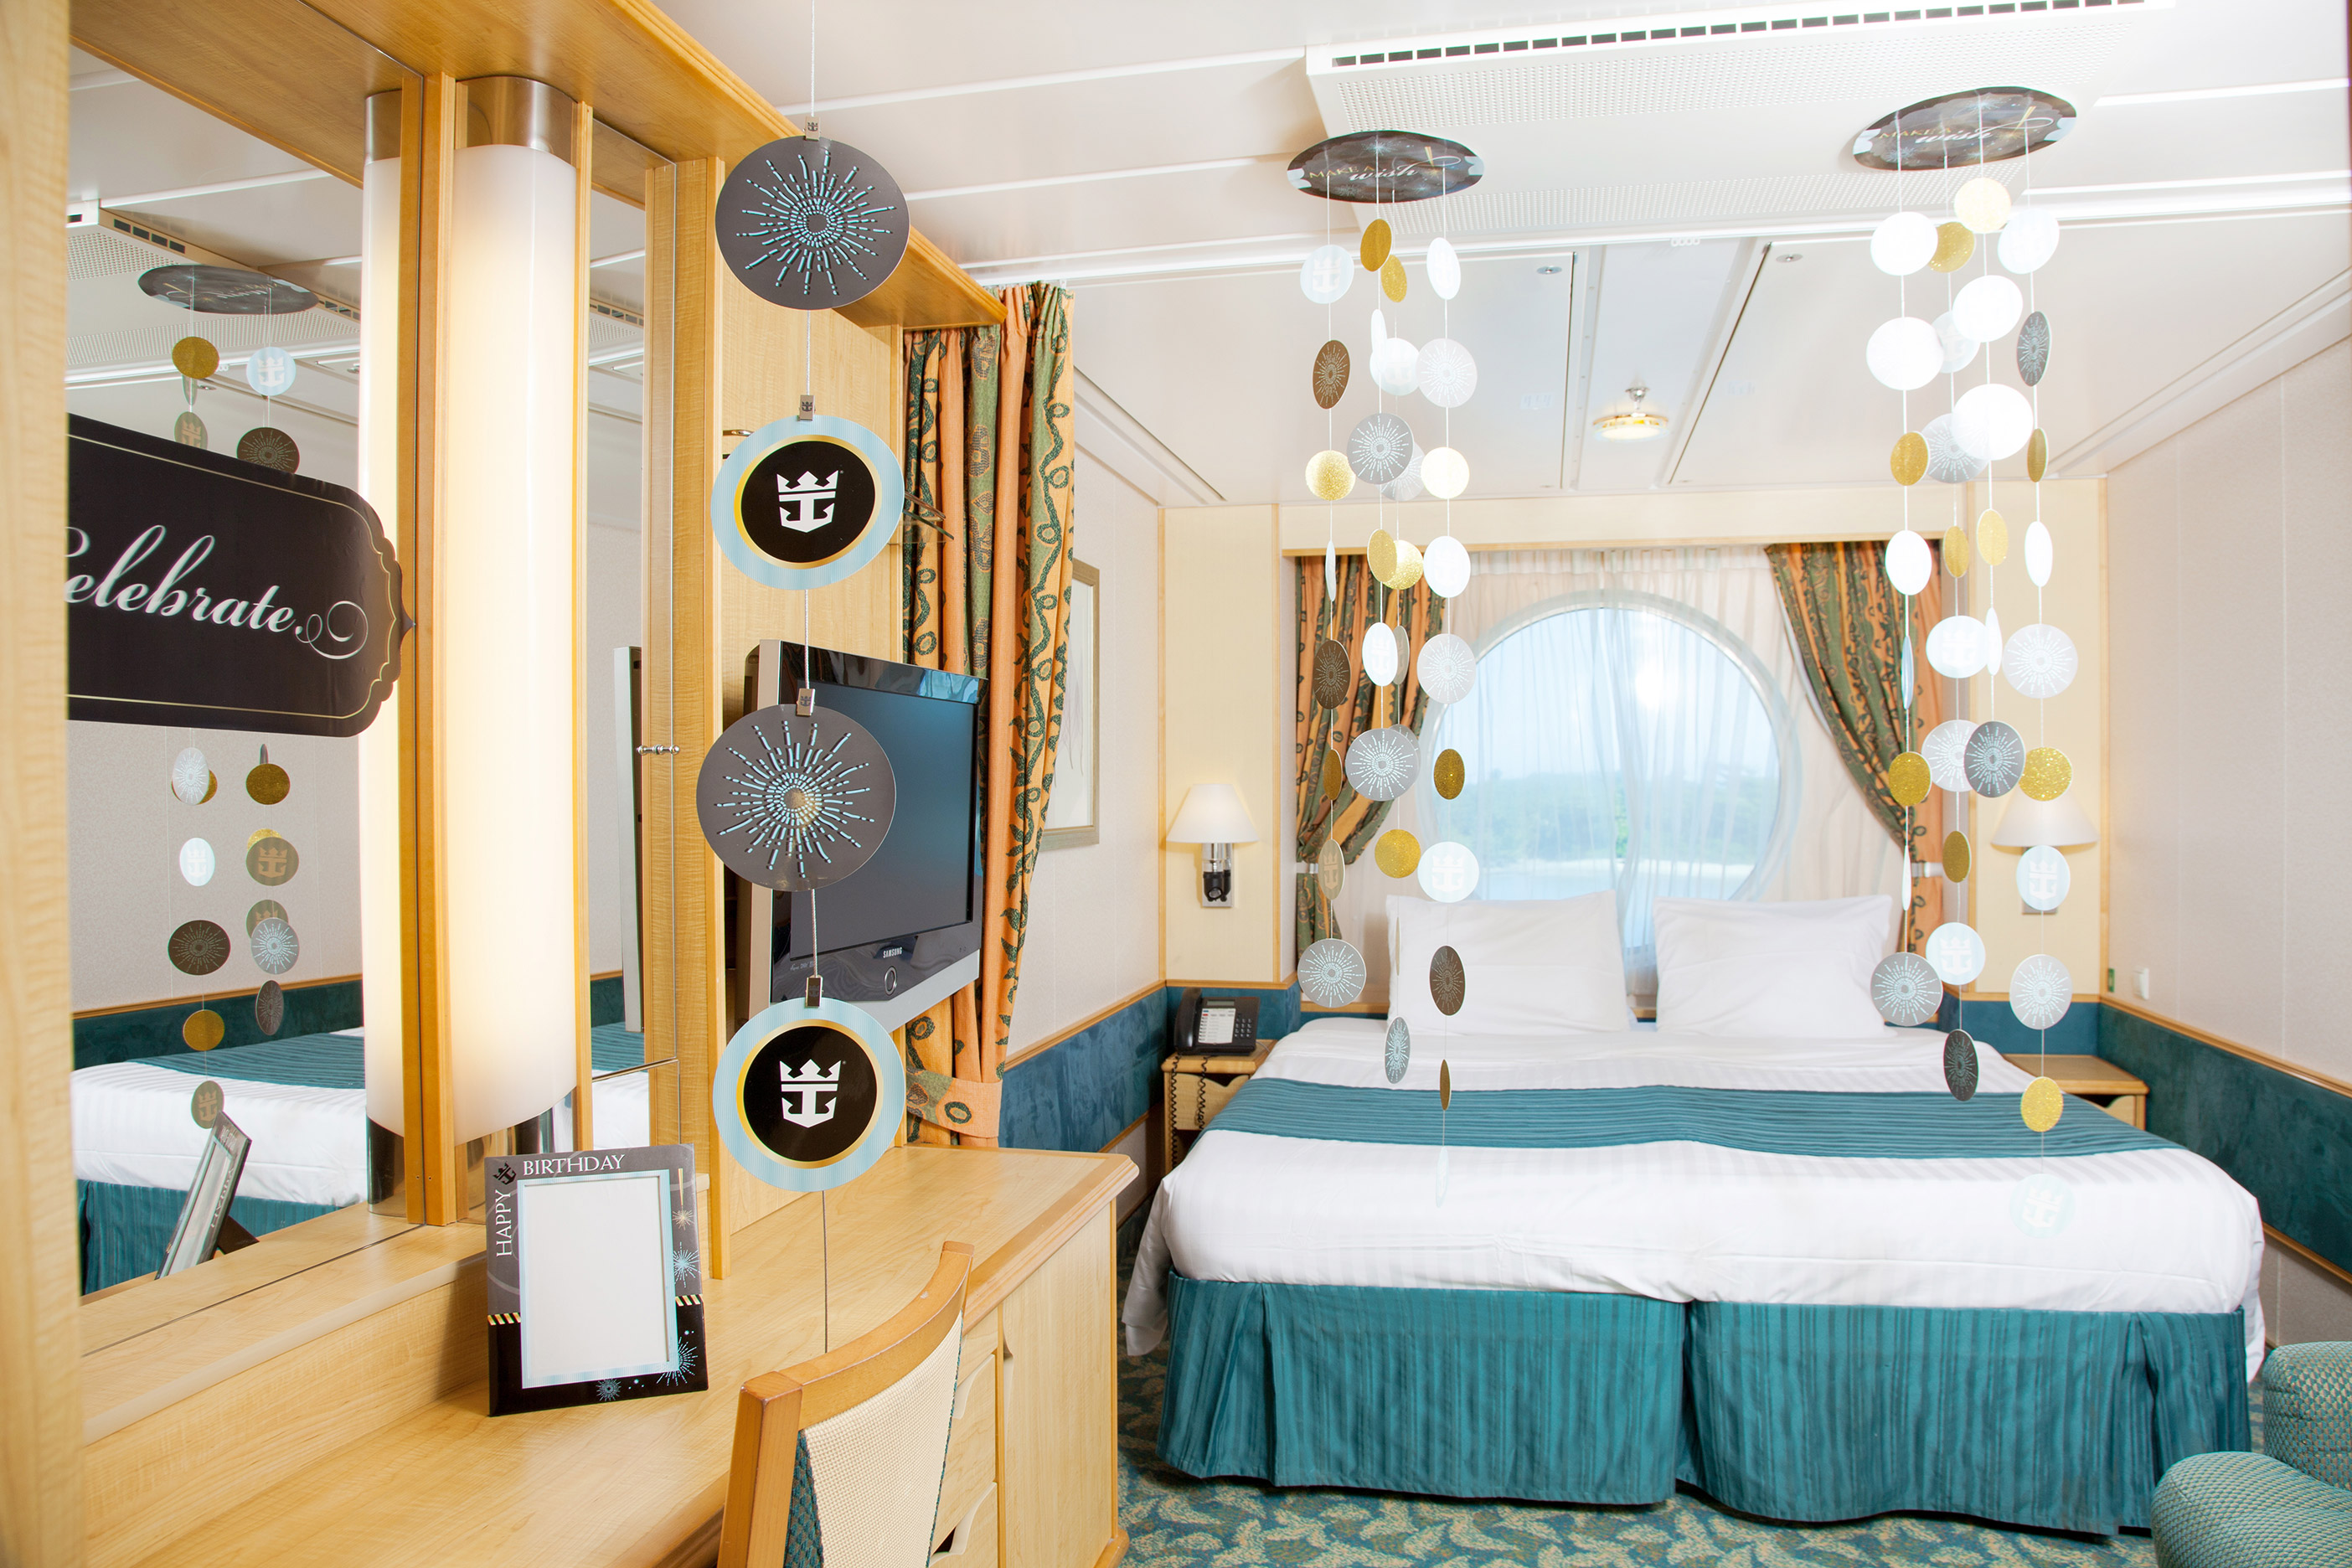 Happy birthday paisley room d cor package for Rooms to go tv package 2015